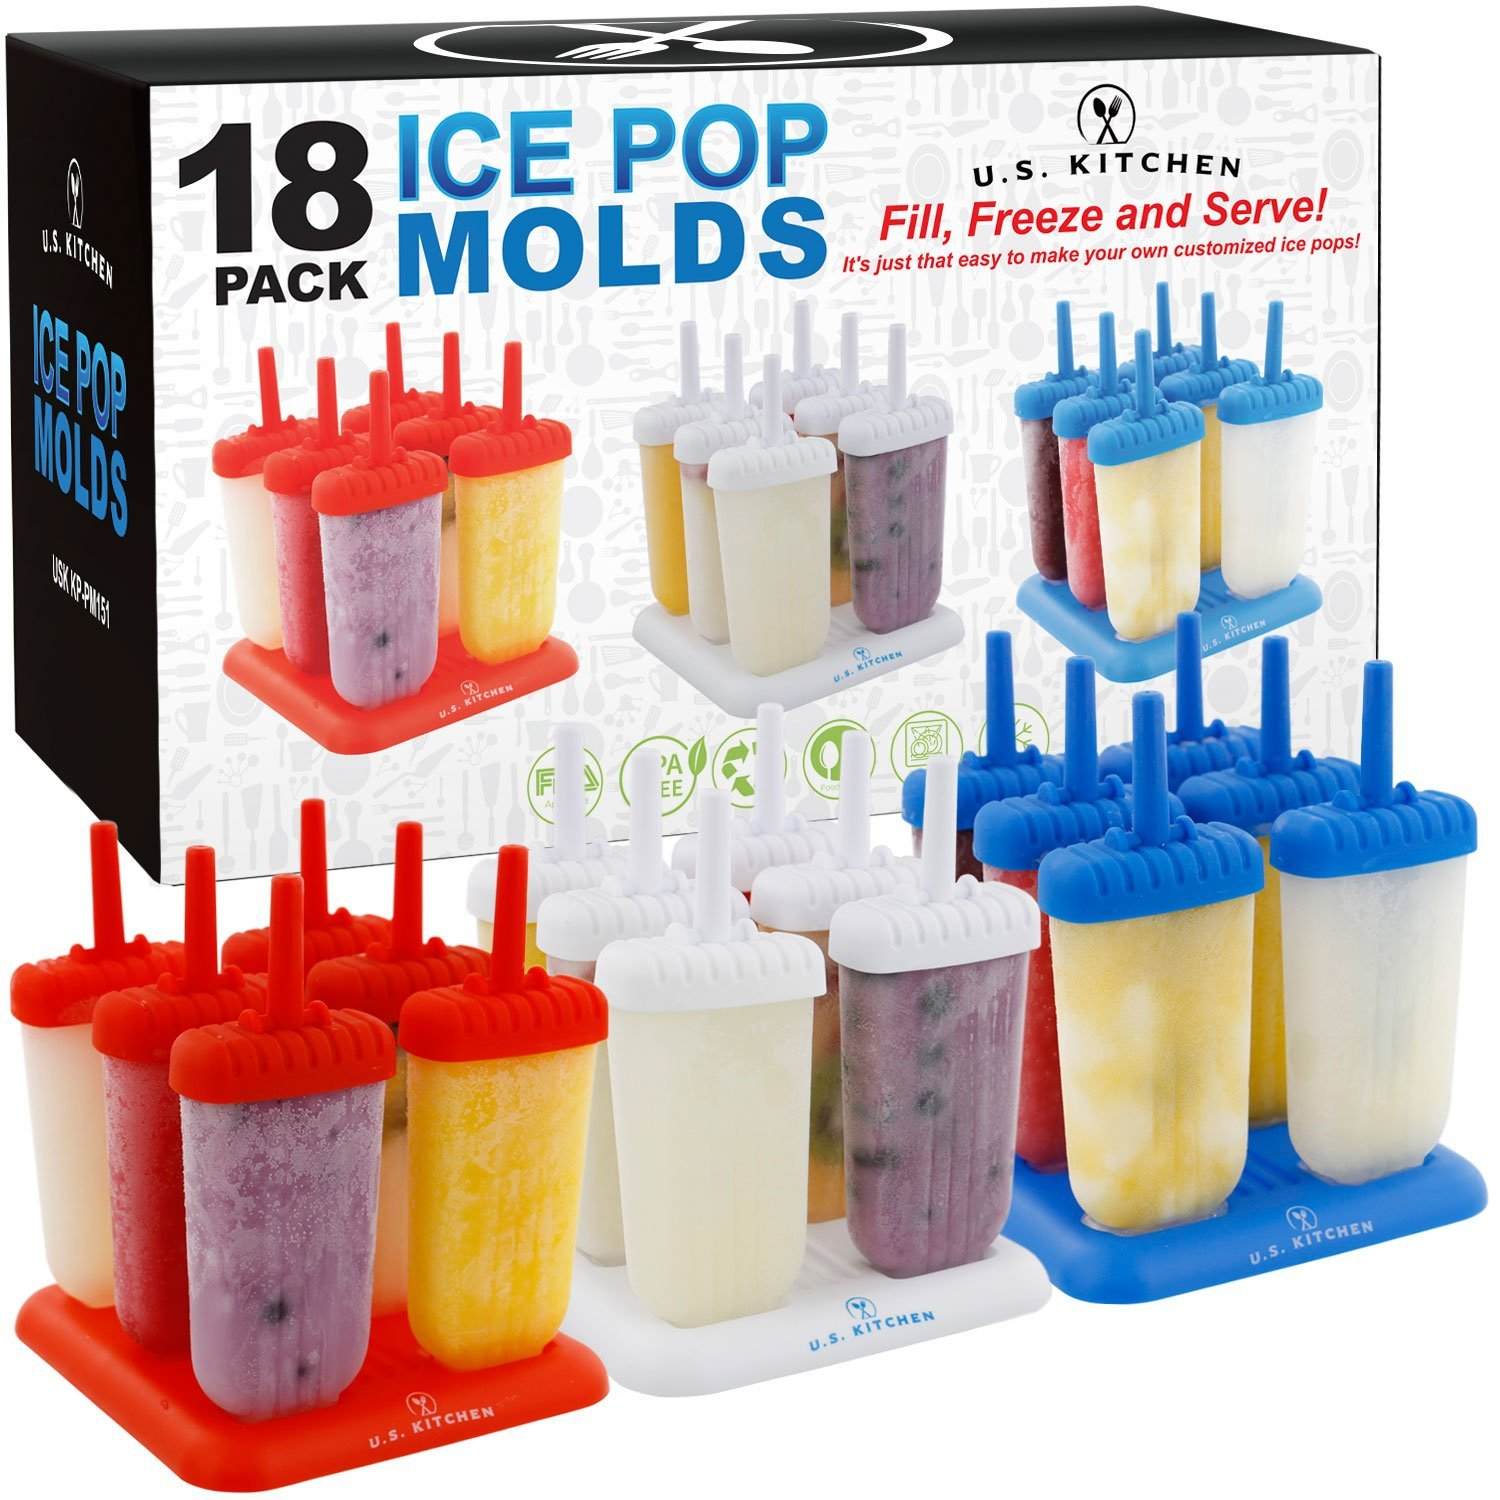 18-Piece Classic Reusable Jumbo Ice Pop Mold Set, 18 REUSABLE ICE POP MOLDS: 3 convenient color coded 6 pack sets in Red, White and Blue for a total of 18.., By U.S. Kitchen Supply,USA